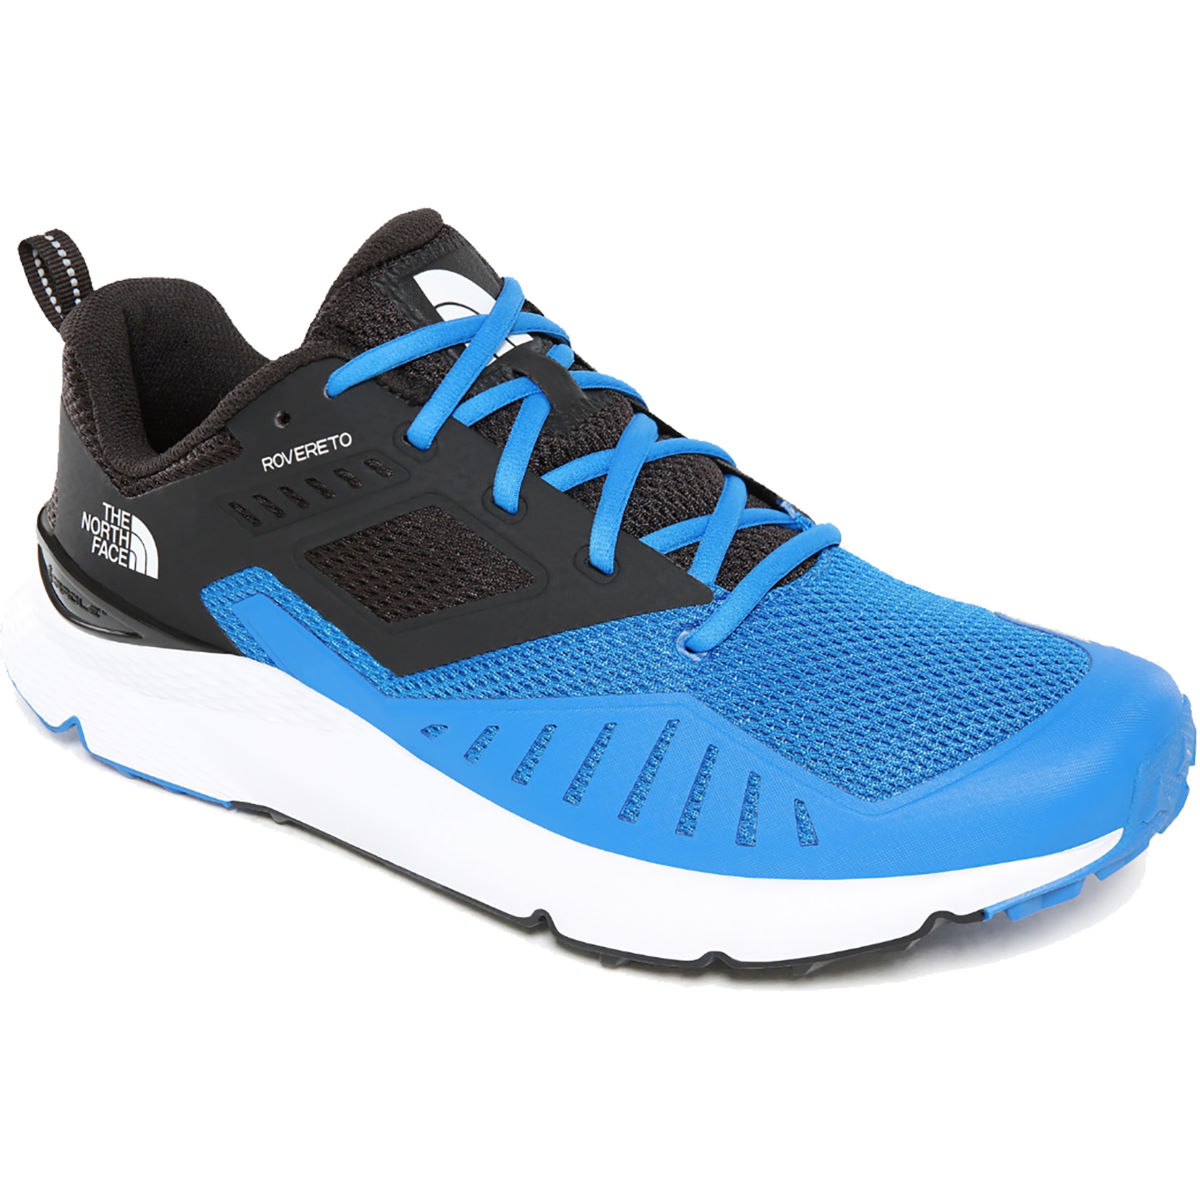 The North Face The North Face Rovereto Shoes   Shoes